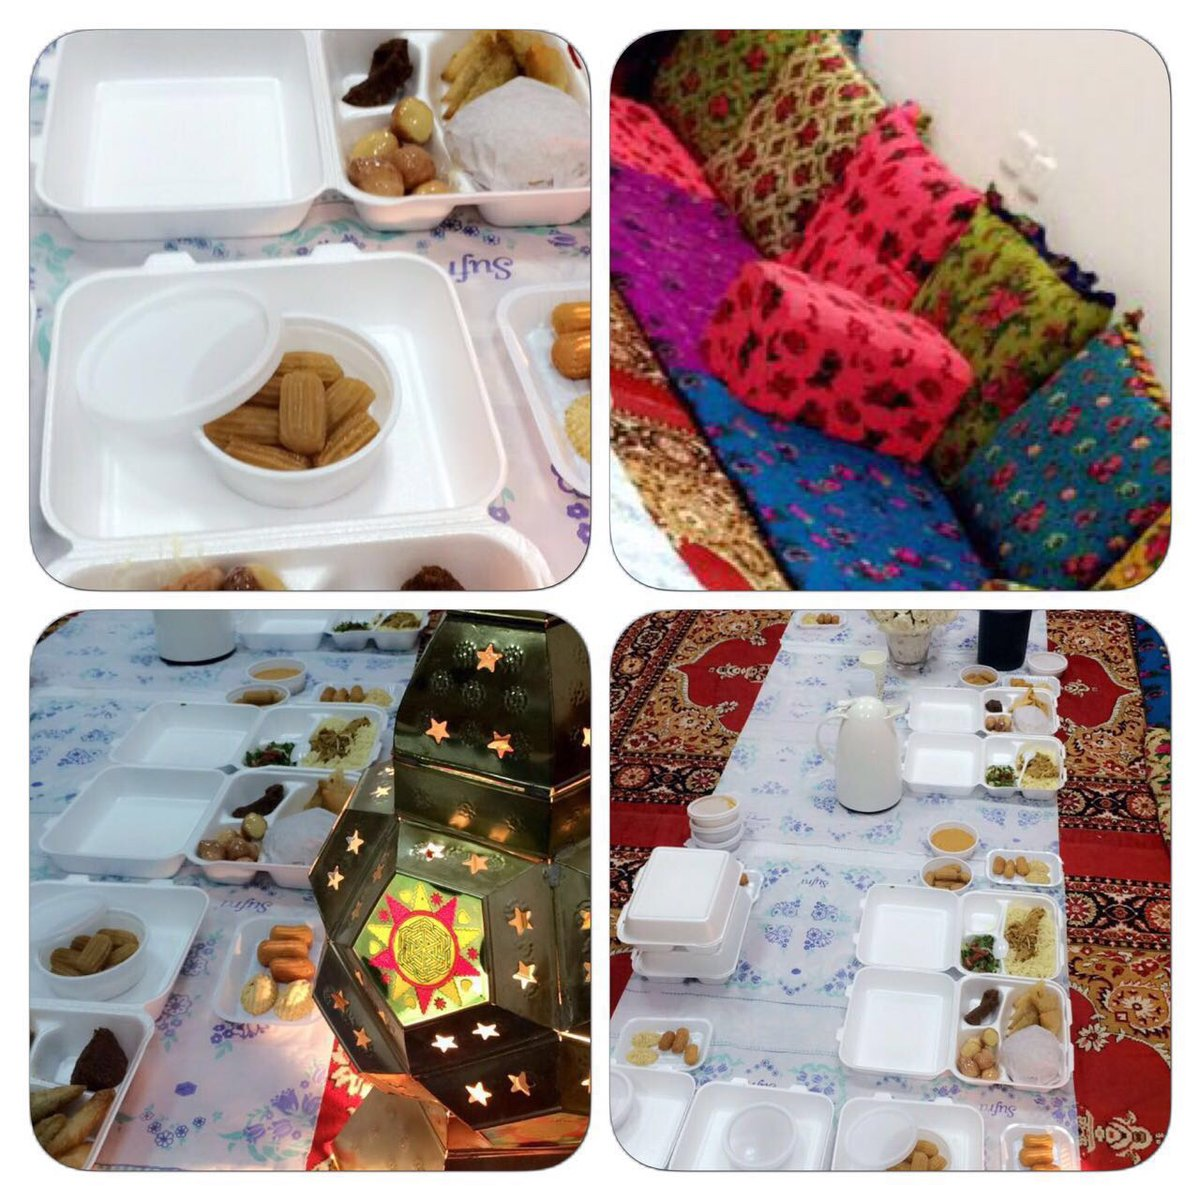 Girls Welfare Foundation #Riyadh organizes a social program for girls with a group breakfast.